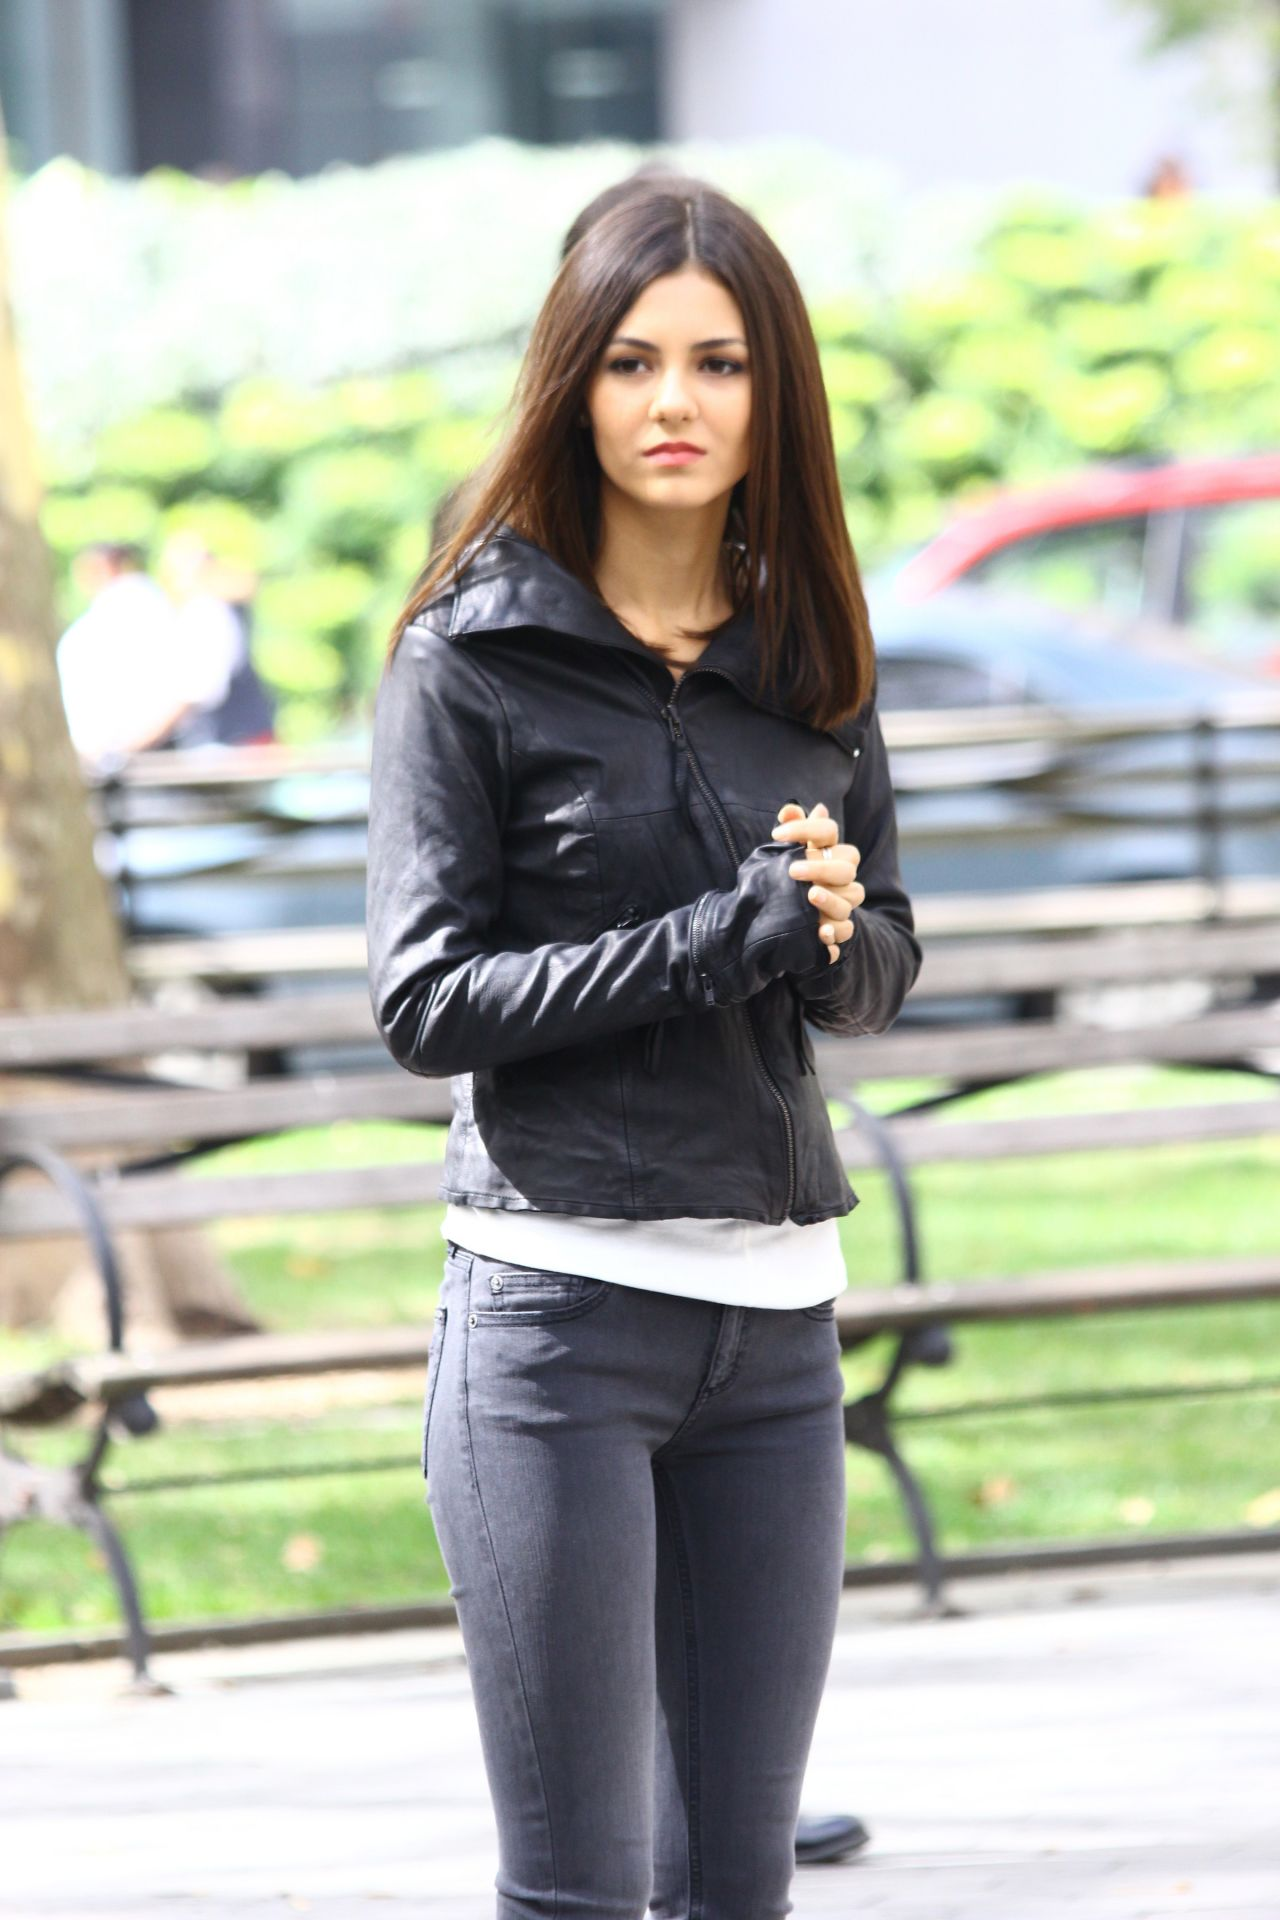 Eye Candy Nails Training: Victoria Justice On Set Of 'Eye Candy' In New York City